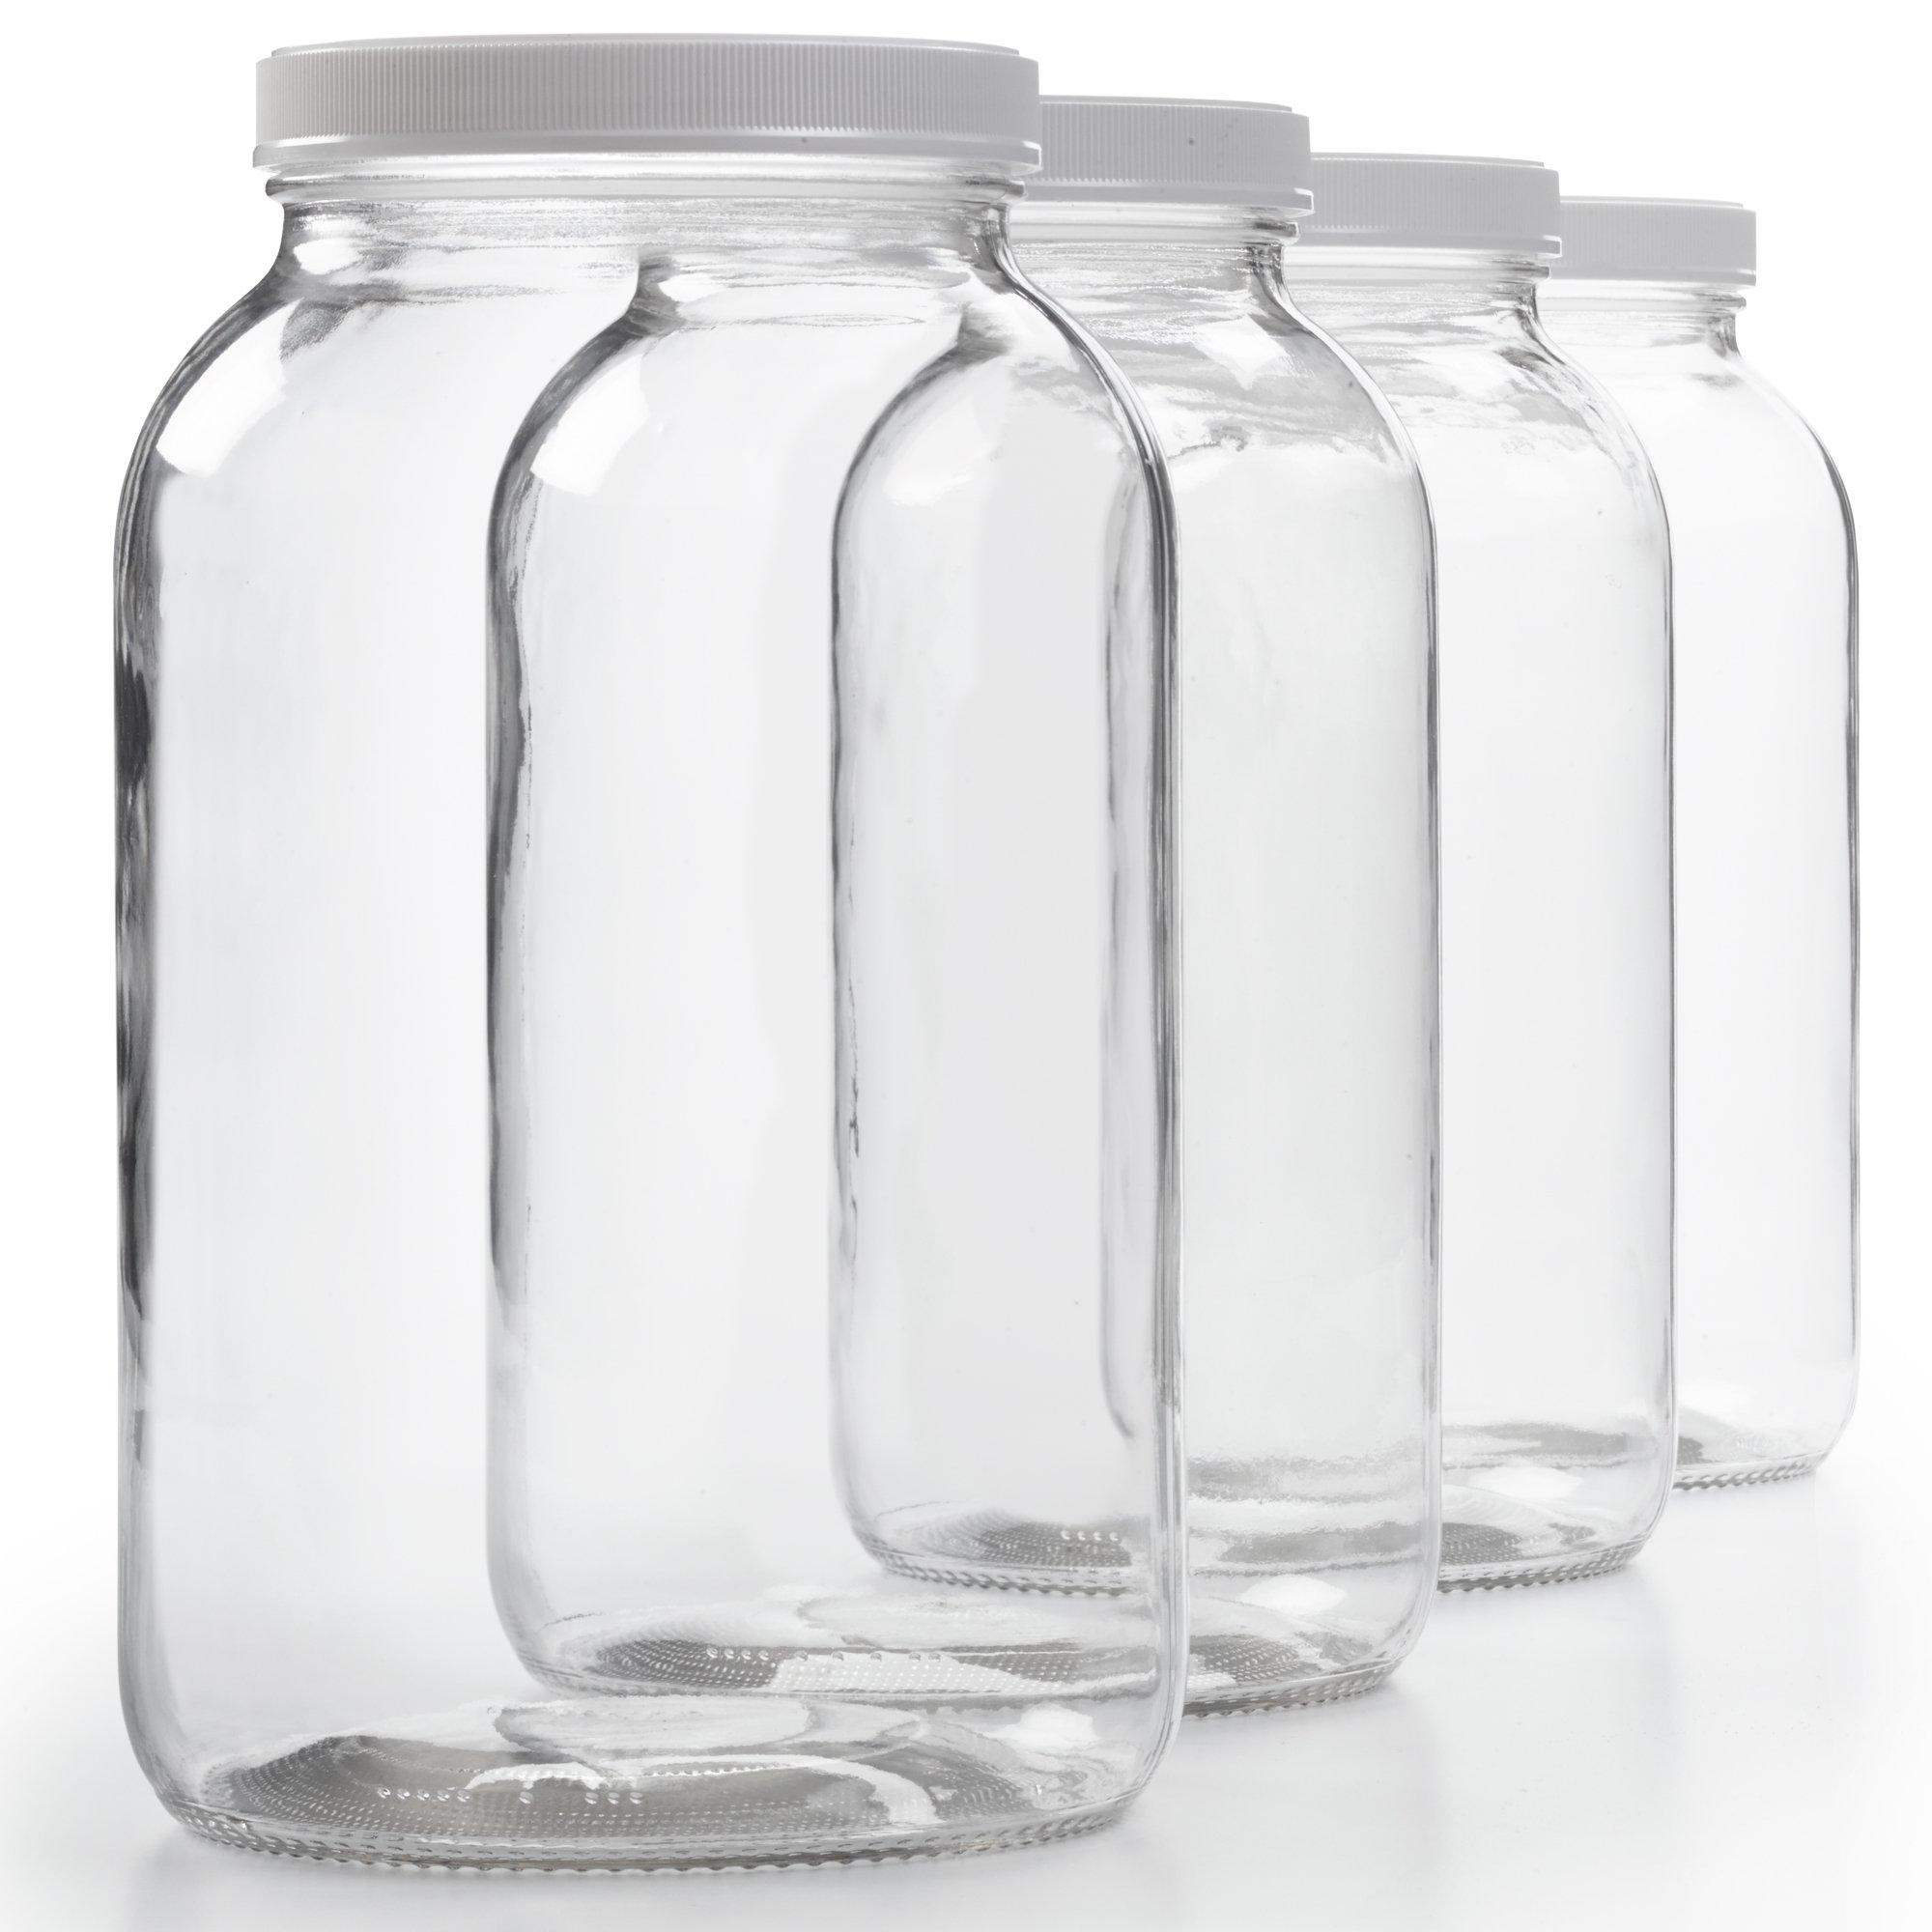 4 Pack - 1 Gallon Glass Jar w/Plastic Airtight Lid, Muslin Cloth, Rubber Band - Wide Mouth Easy Clean - BPA Free & Dishwasher Safe - Kombucha, Kefir, Canning, Sun Tea, Fermentation, Food Storage by 1790